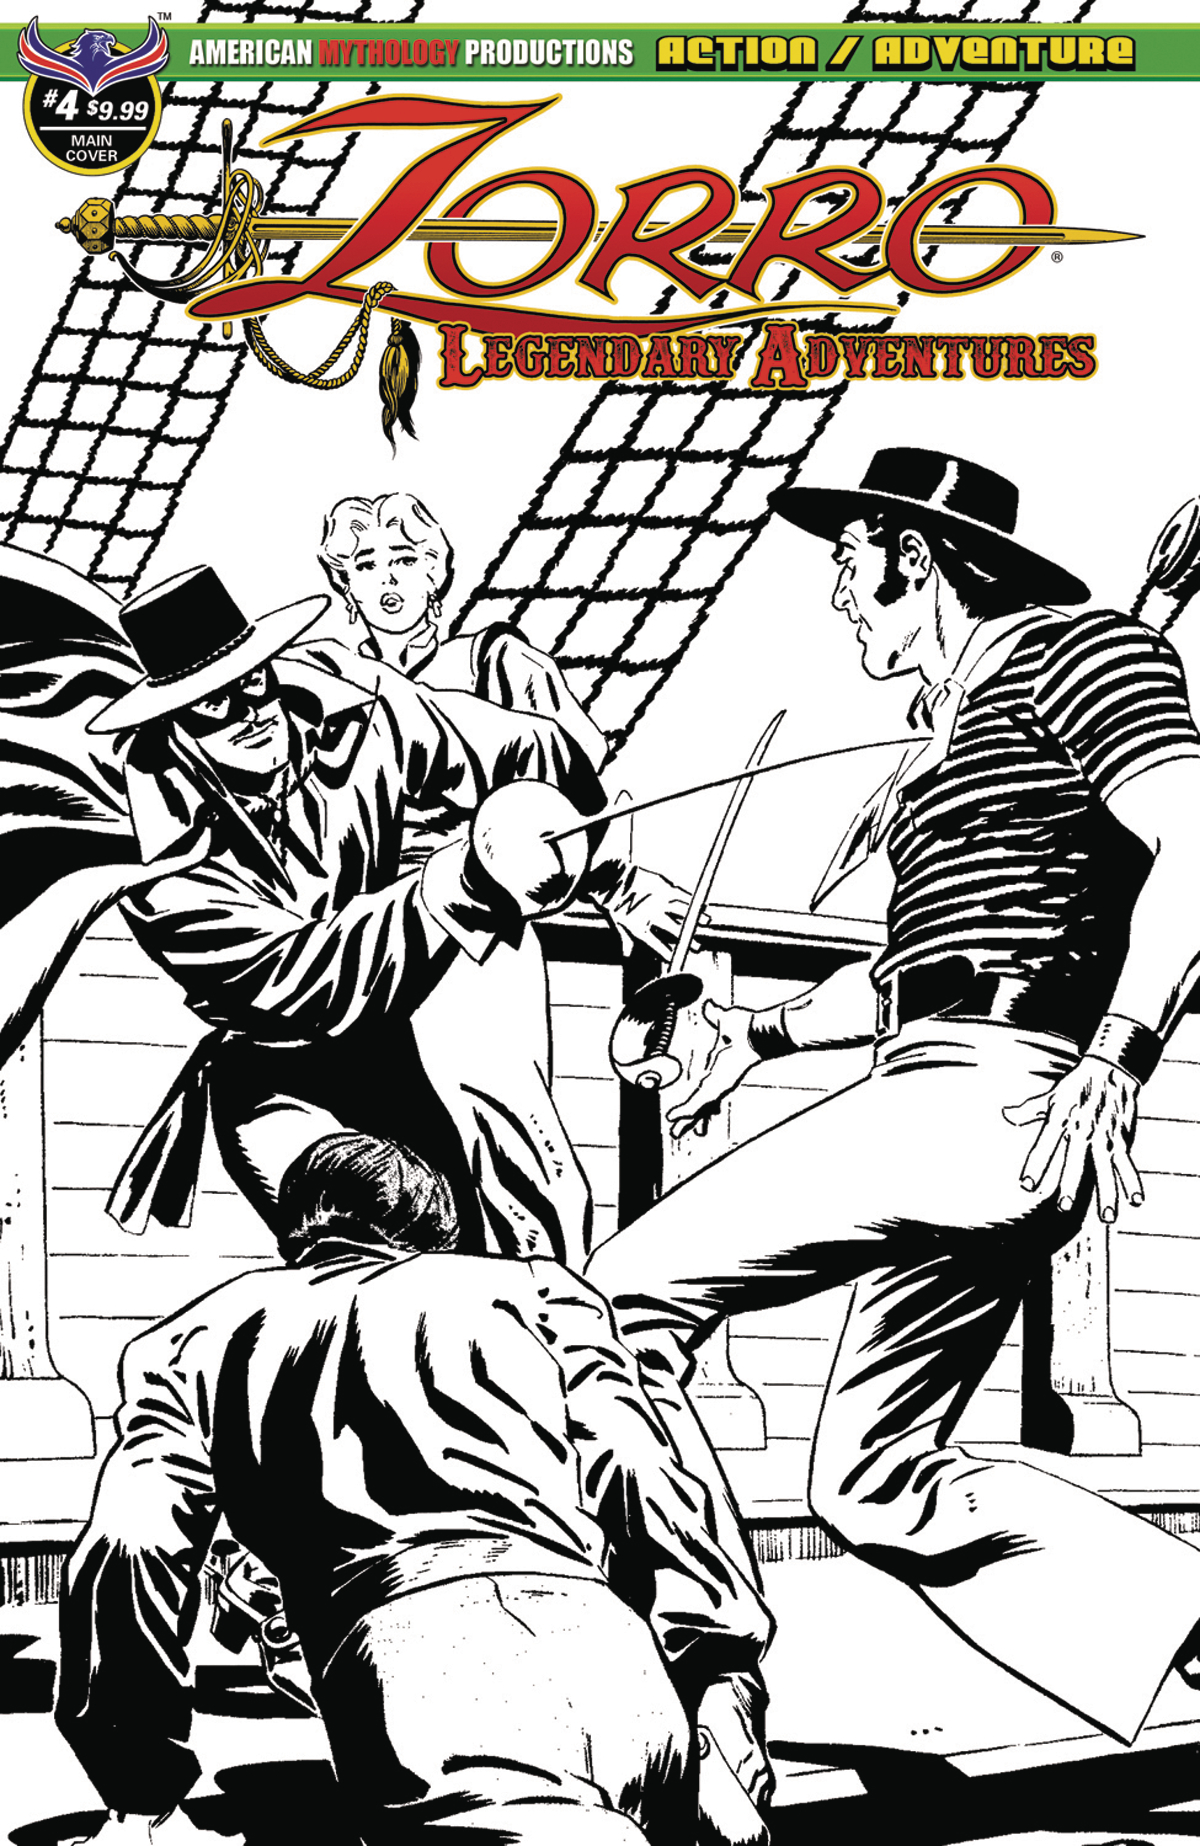 ZORRO LEGENDARY ADVENTURES #4 BLAZING BLADES OF ZORRO LTD ED